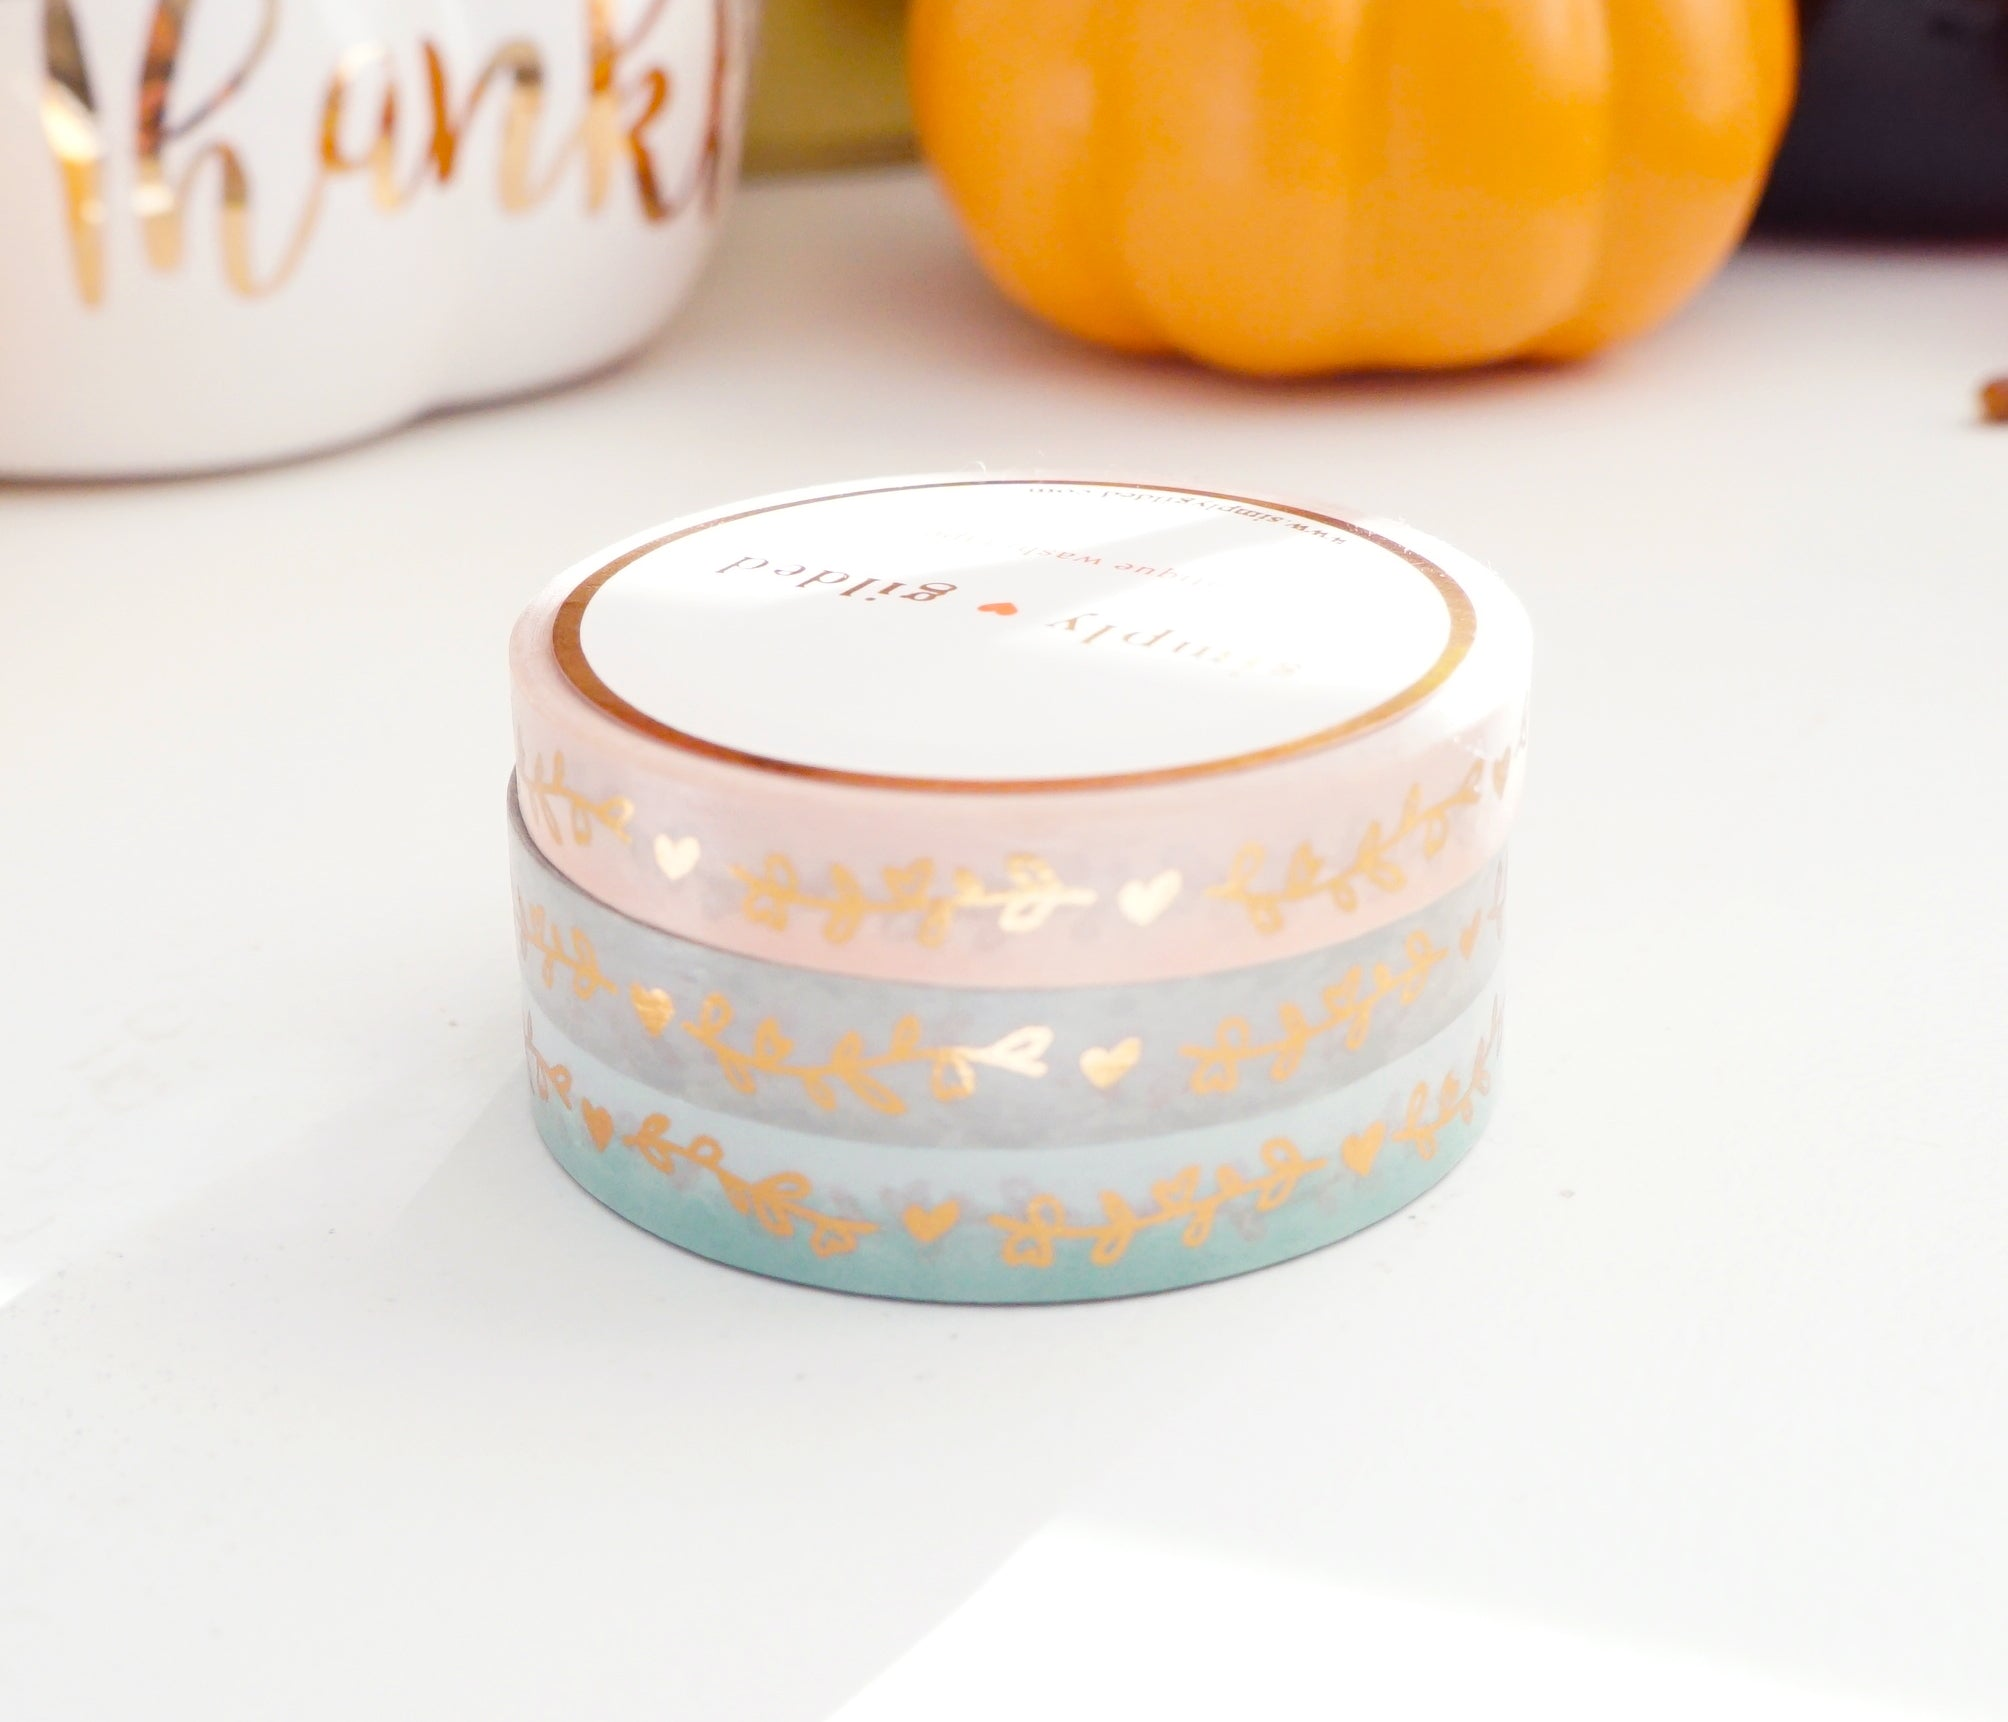 WASHI TAPE 7.5mm set of 3 - HEART & VINE SWEET SAGE + rose gold foil (October 2019 Release)